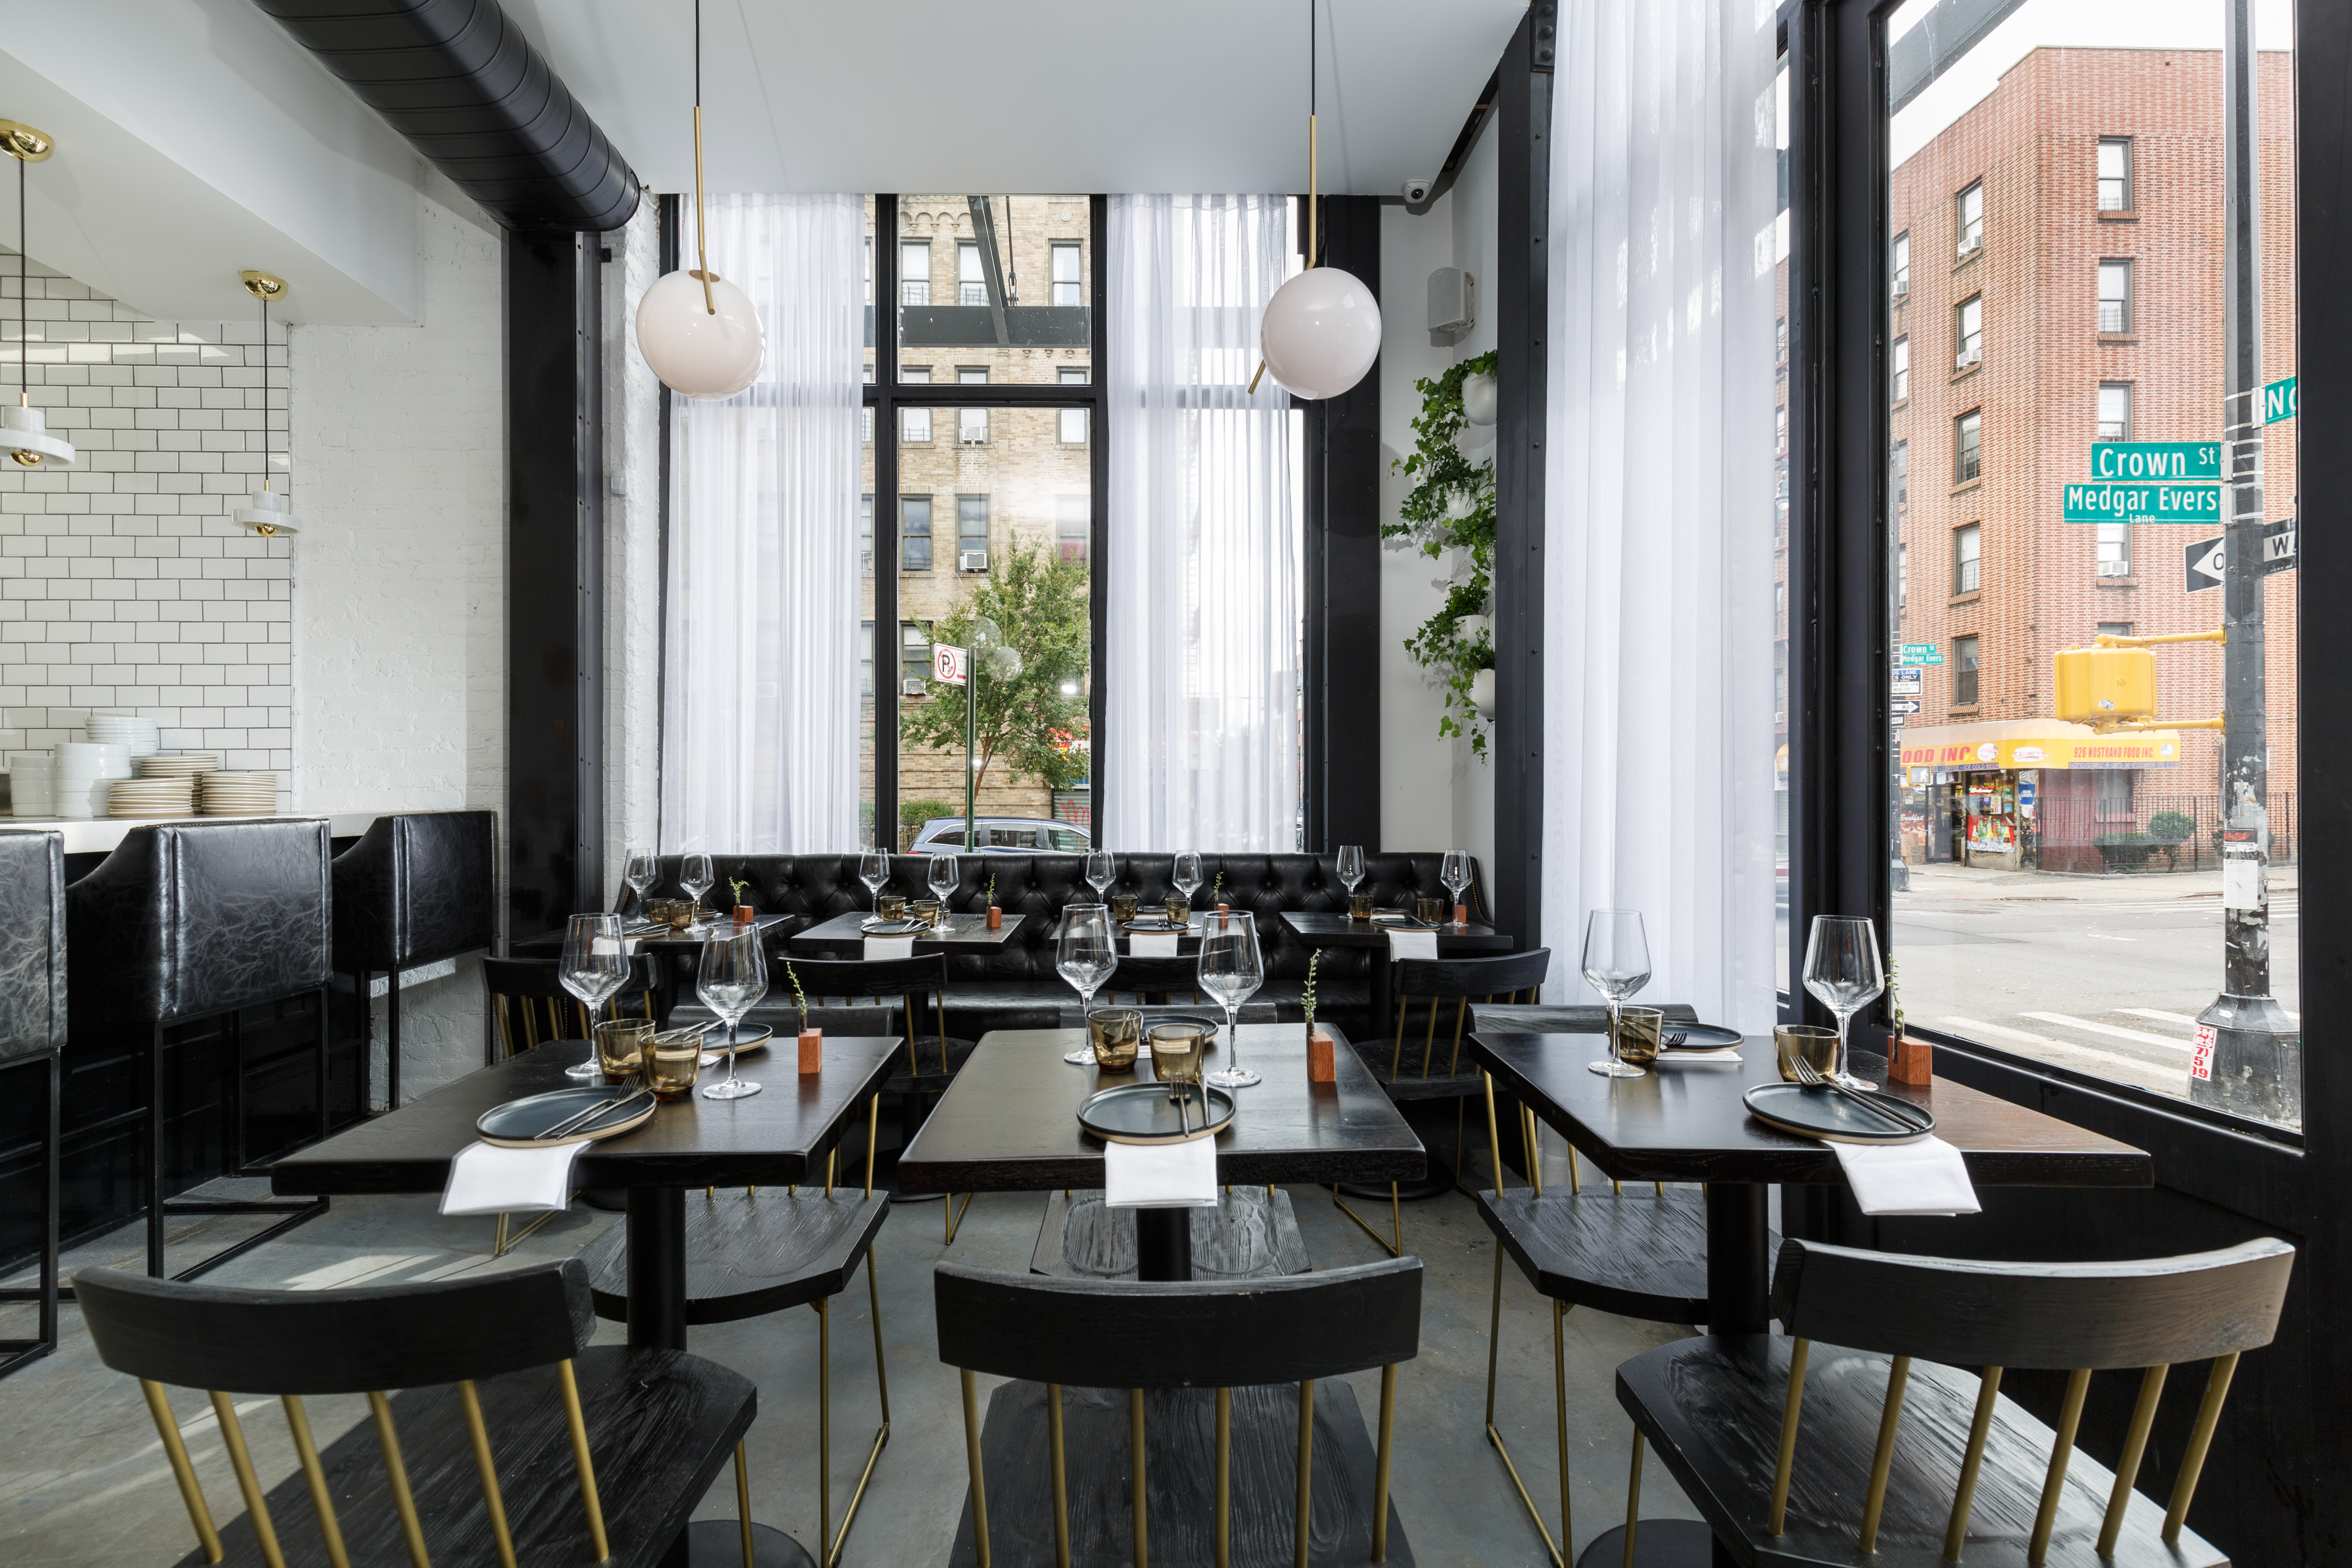 ... Alenbi Kitchen Is The Project Of Chef Yuda Schlass, Formerly Of Hassid  U0026 Hipster, And Chef Elior Balbul, Formerly At Tel Avivu0027s Blue Sky By Meir  Adoni ...